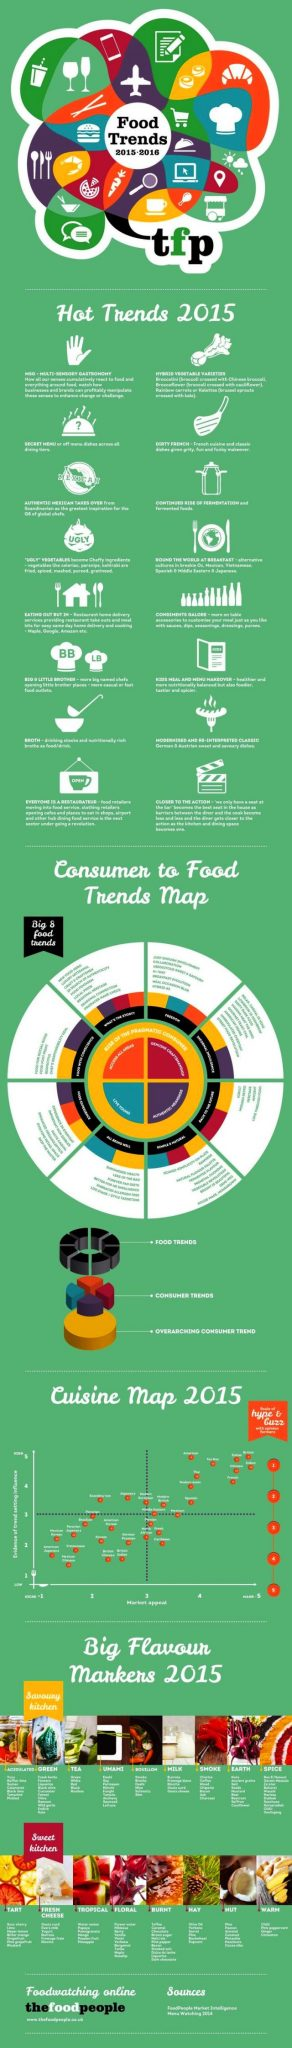 Food trends 2015 infographic